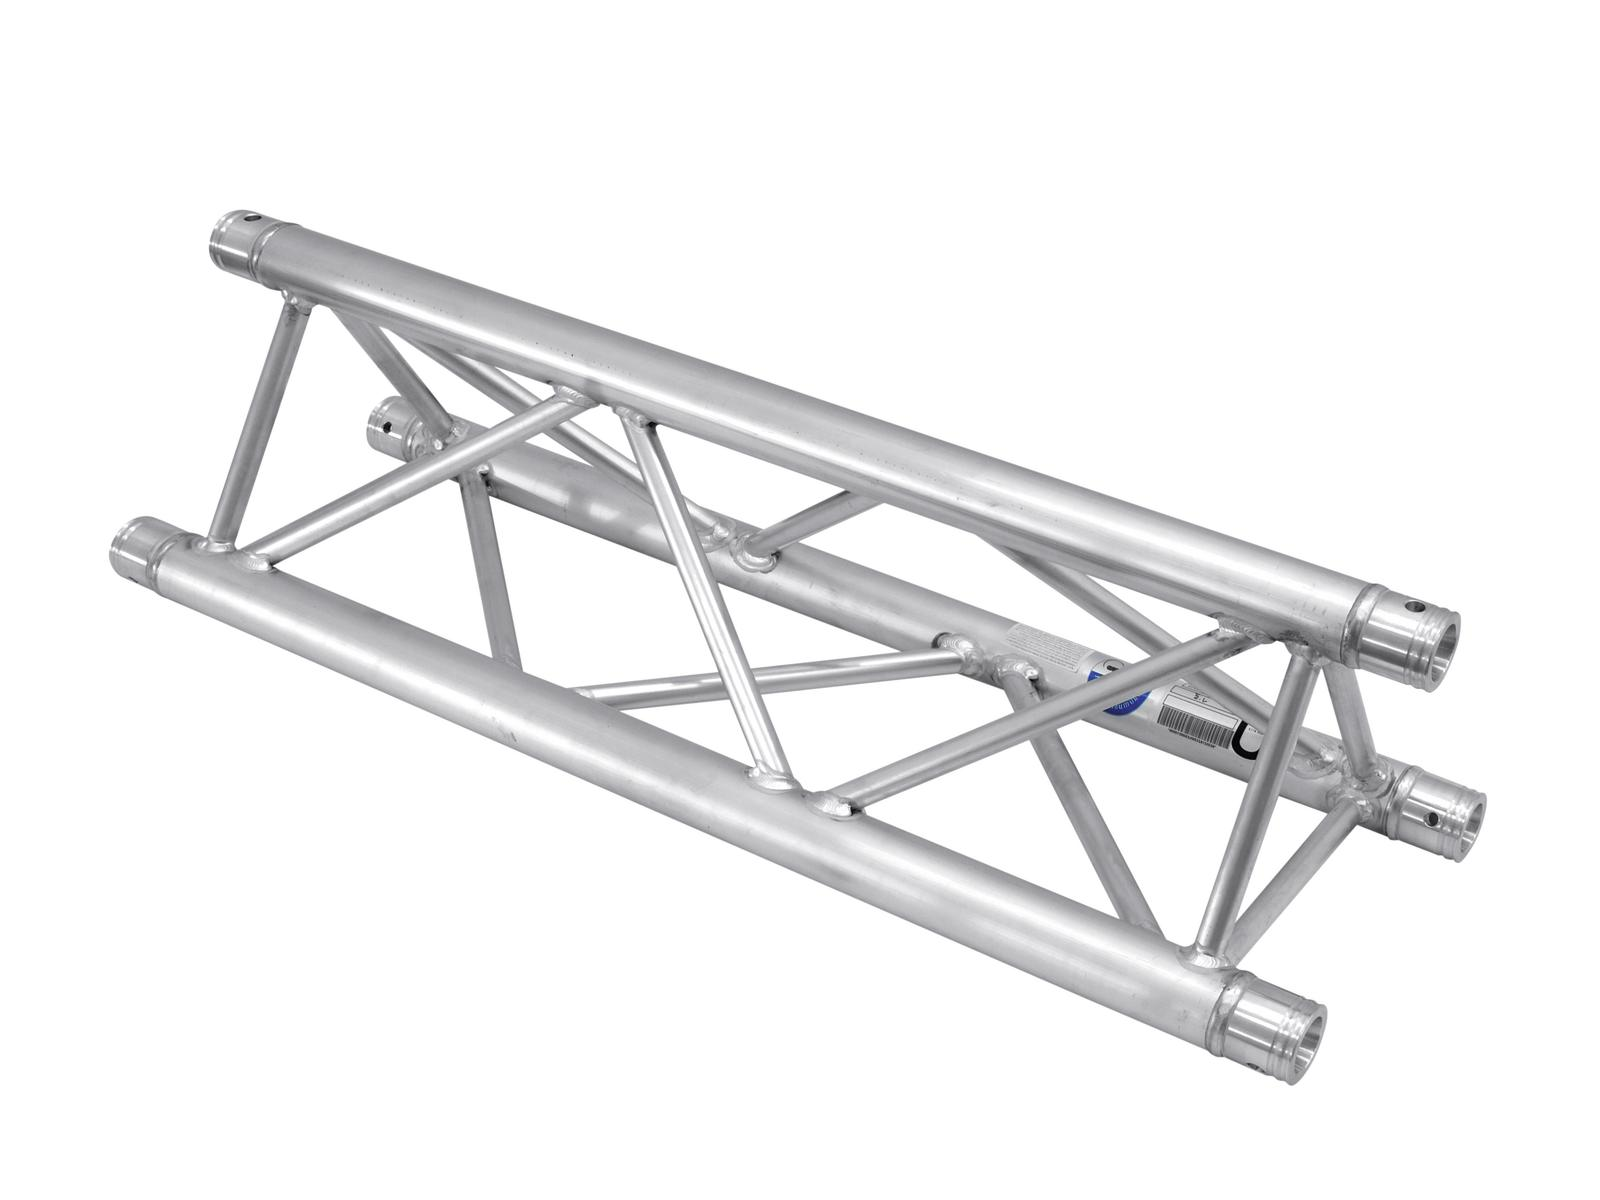 ALUTRUSS TRILOCK E-GL33 5000 a 3 vie traverse